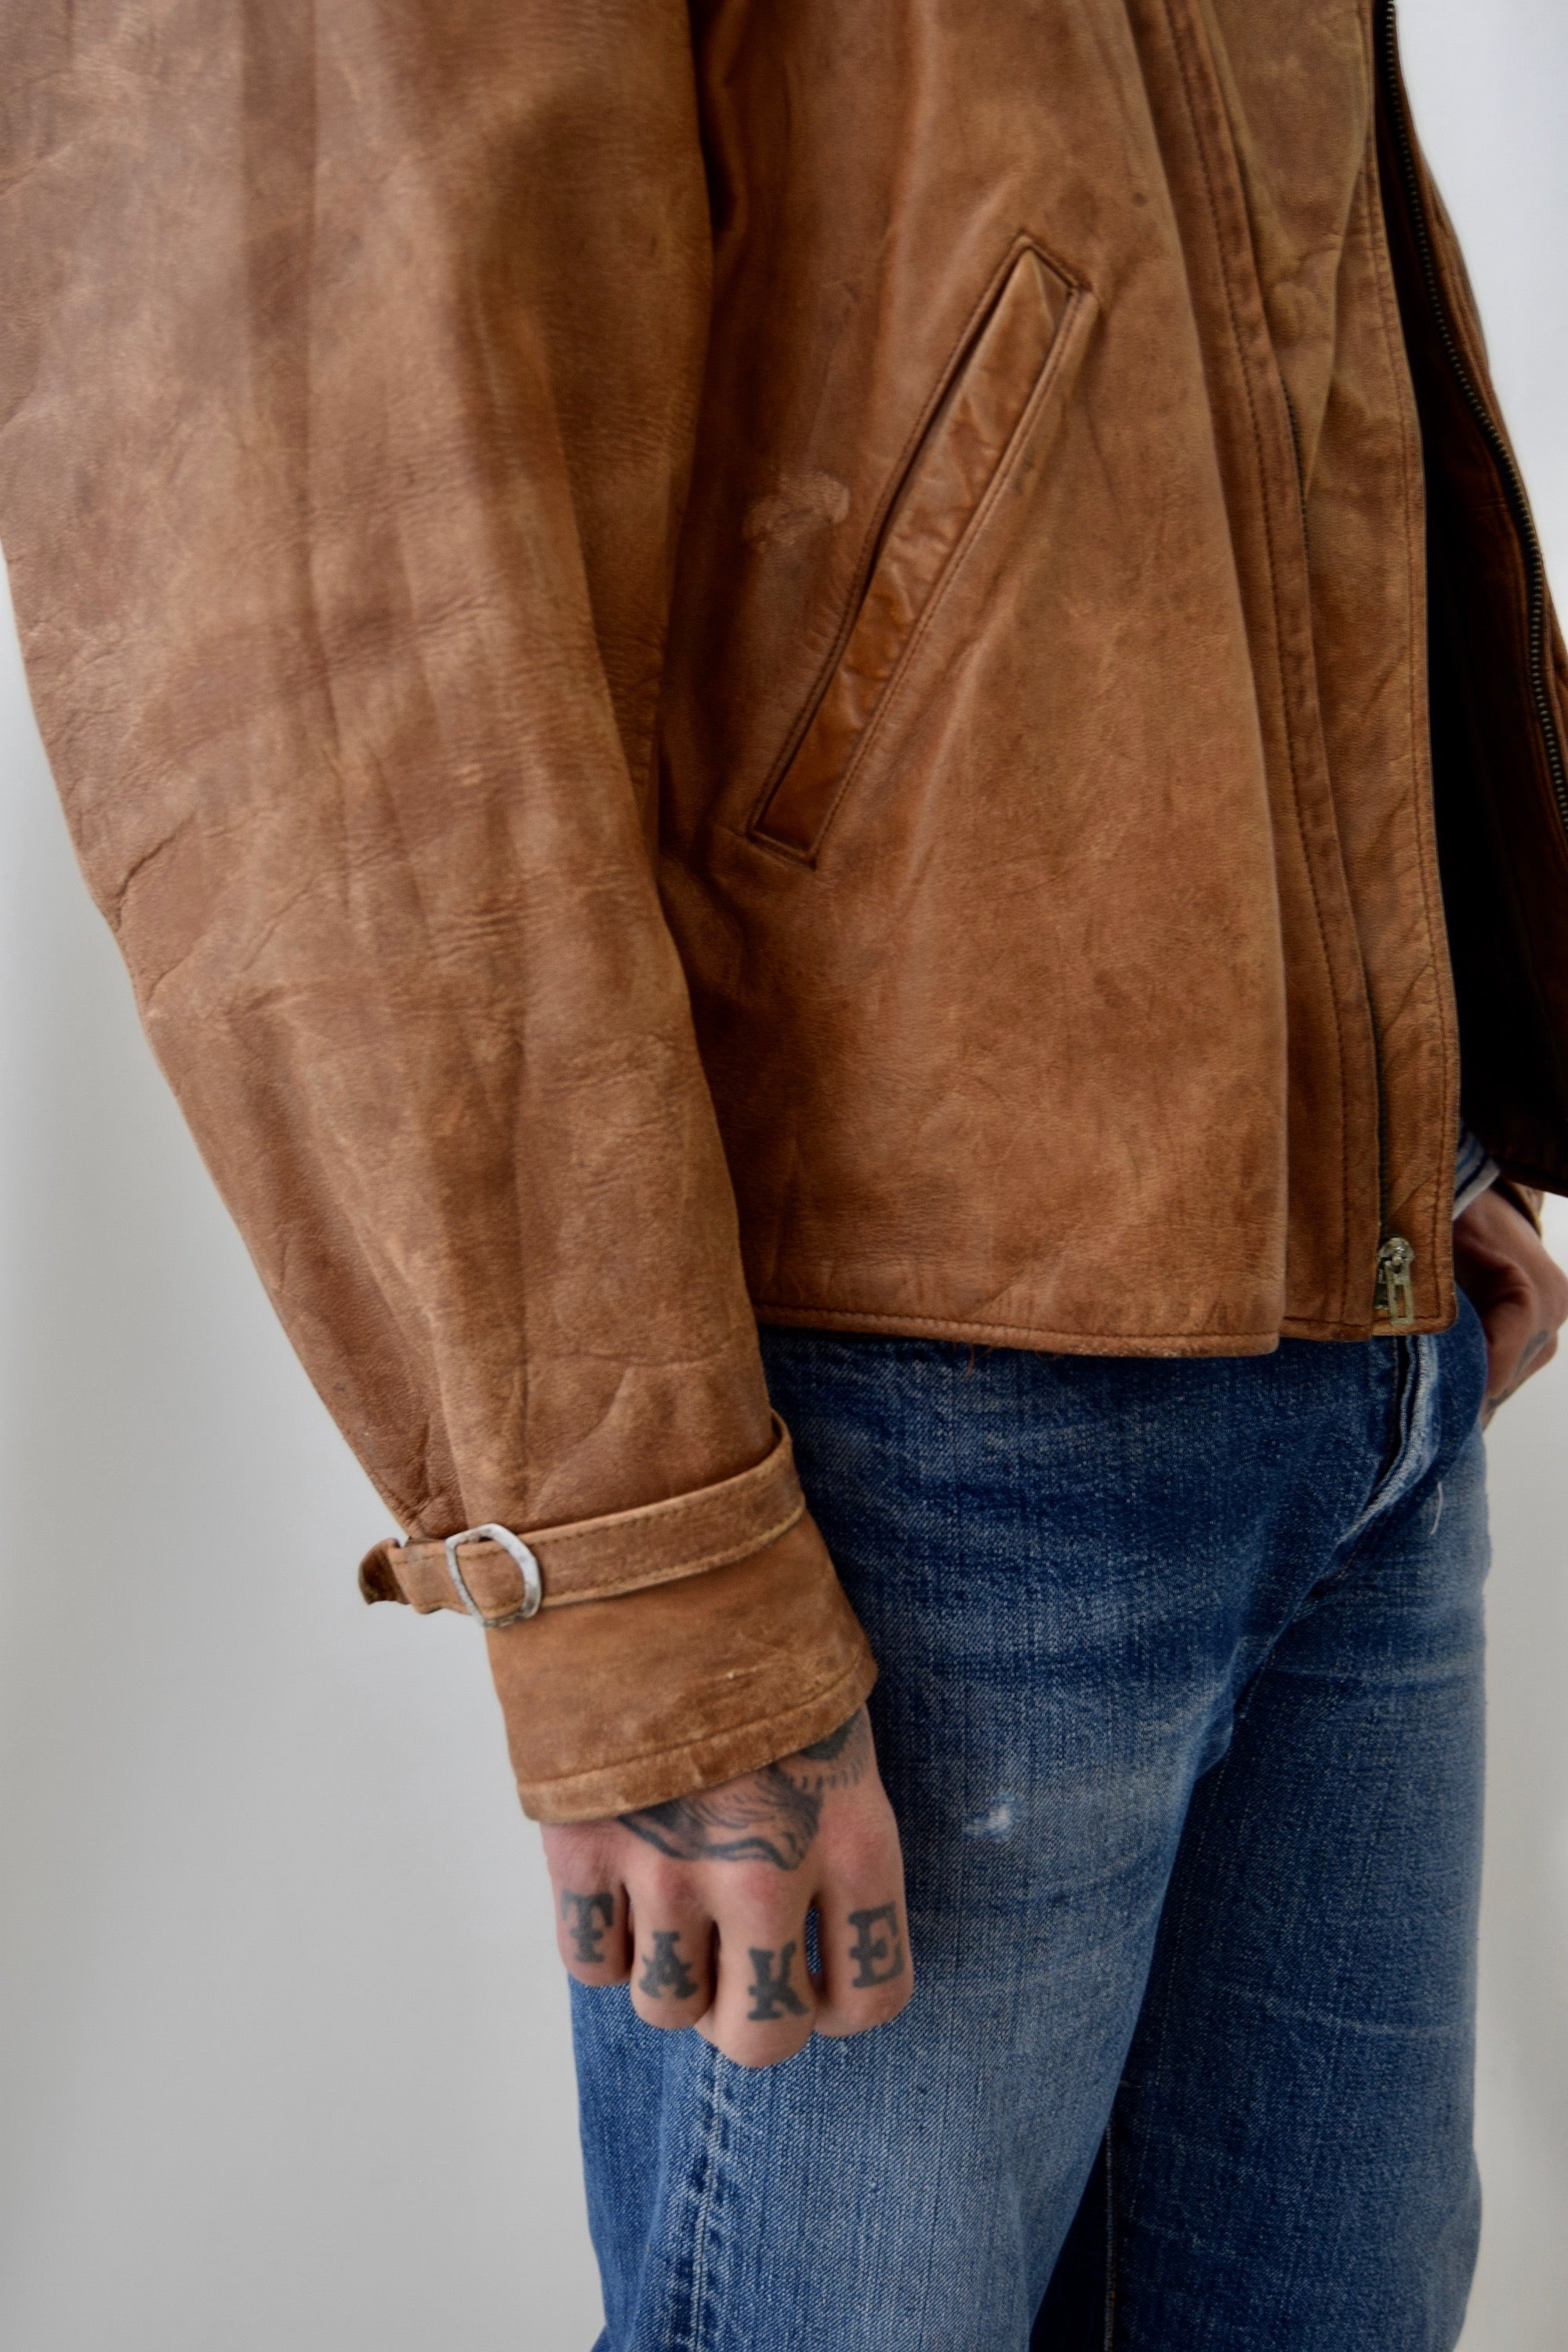 Vintage 1930's/1940's Topline Sportswear Leather Jacket